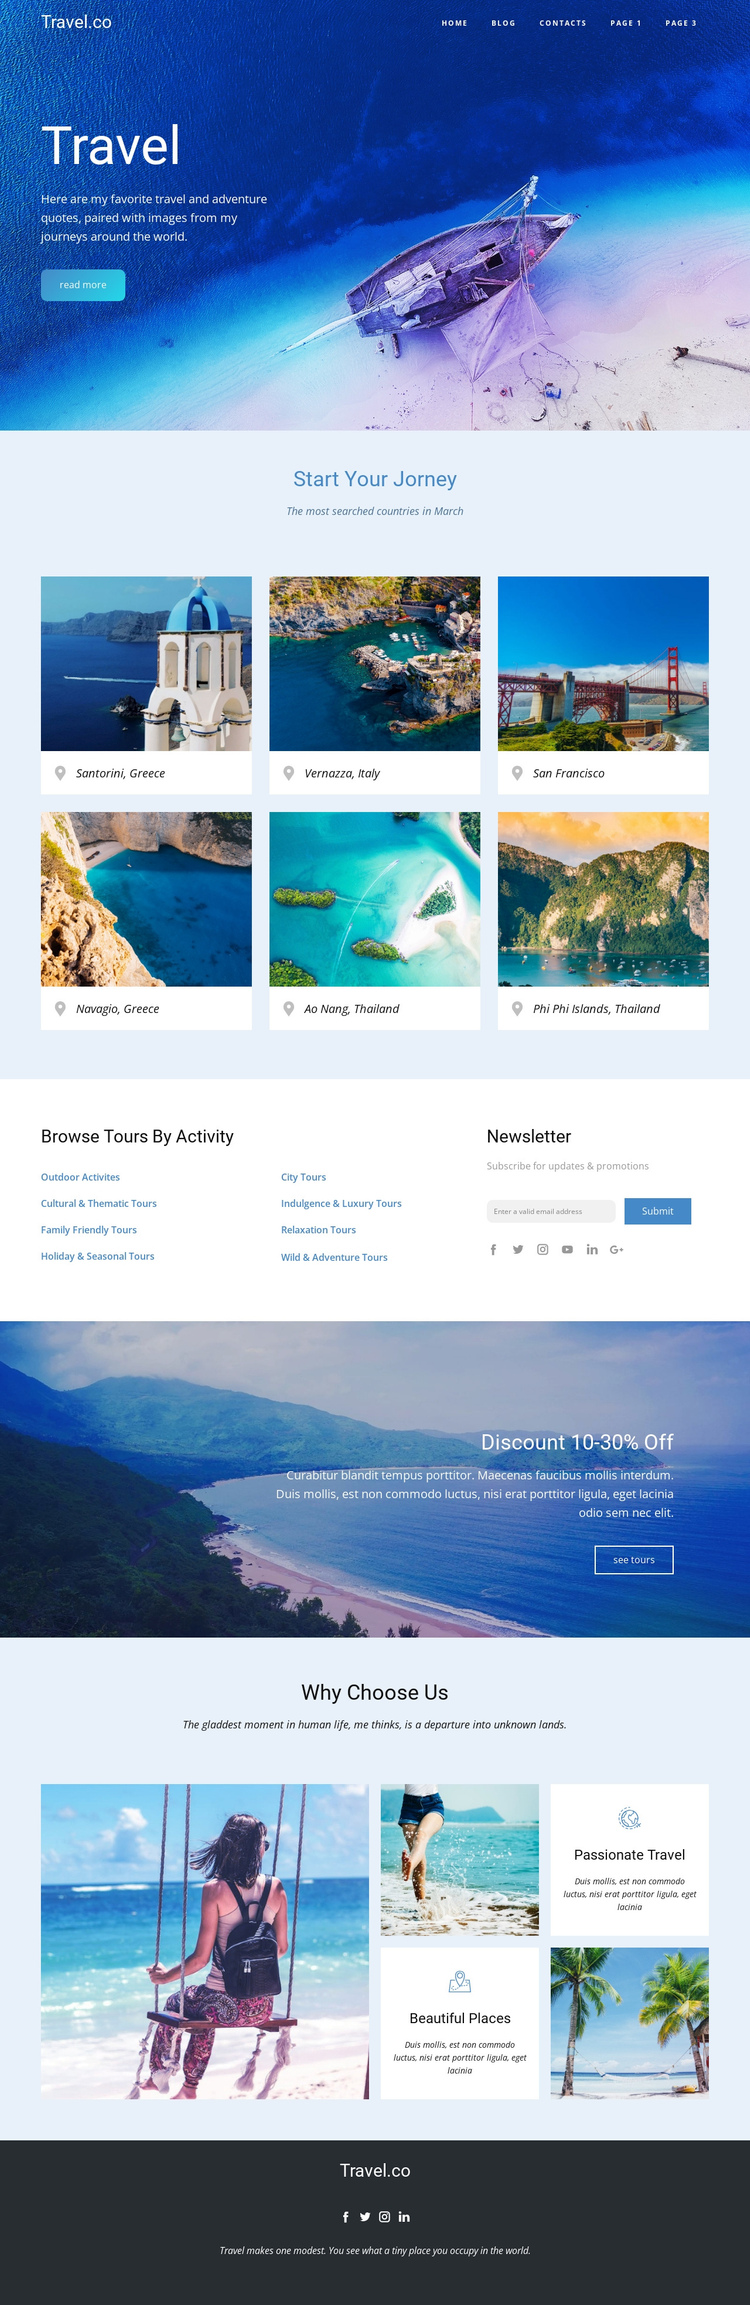 Amazing ideas for travel Website Builder Software